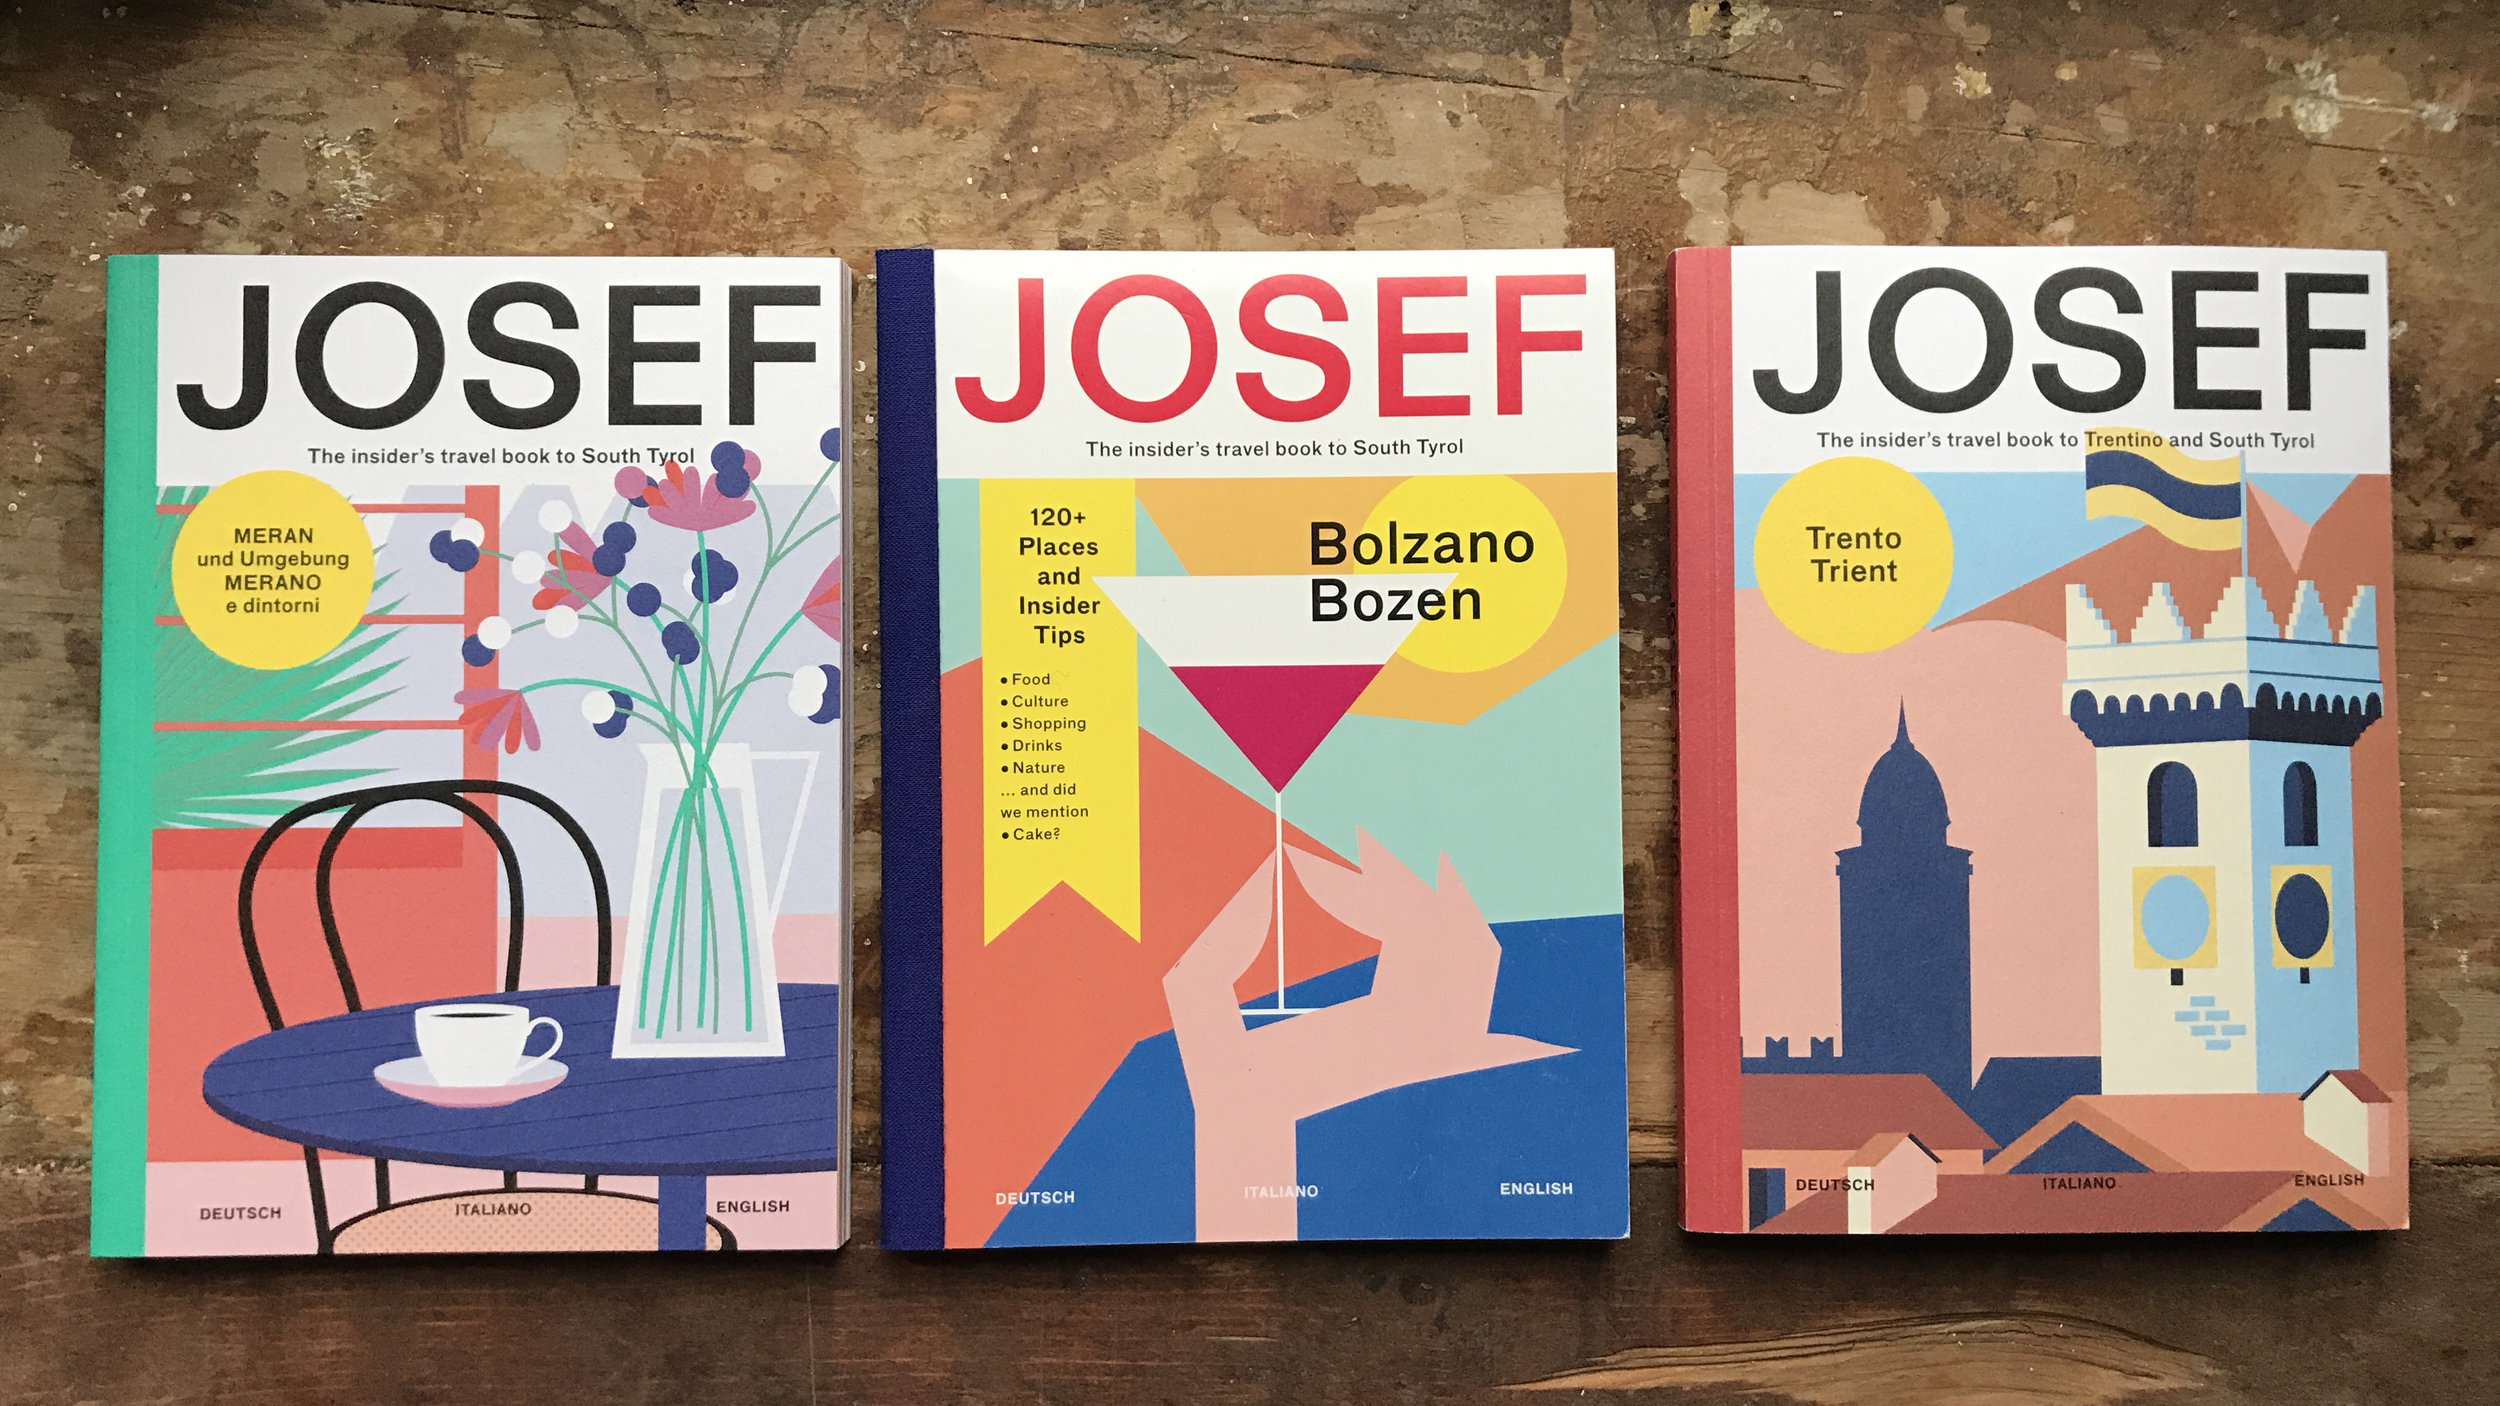 WHERE TO BUY — Josef Travel Book